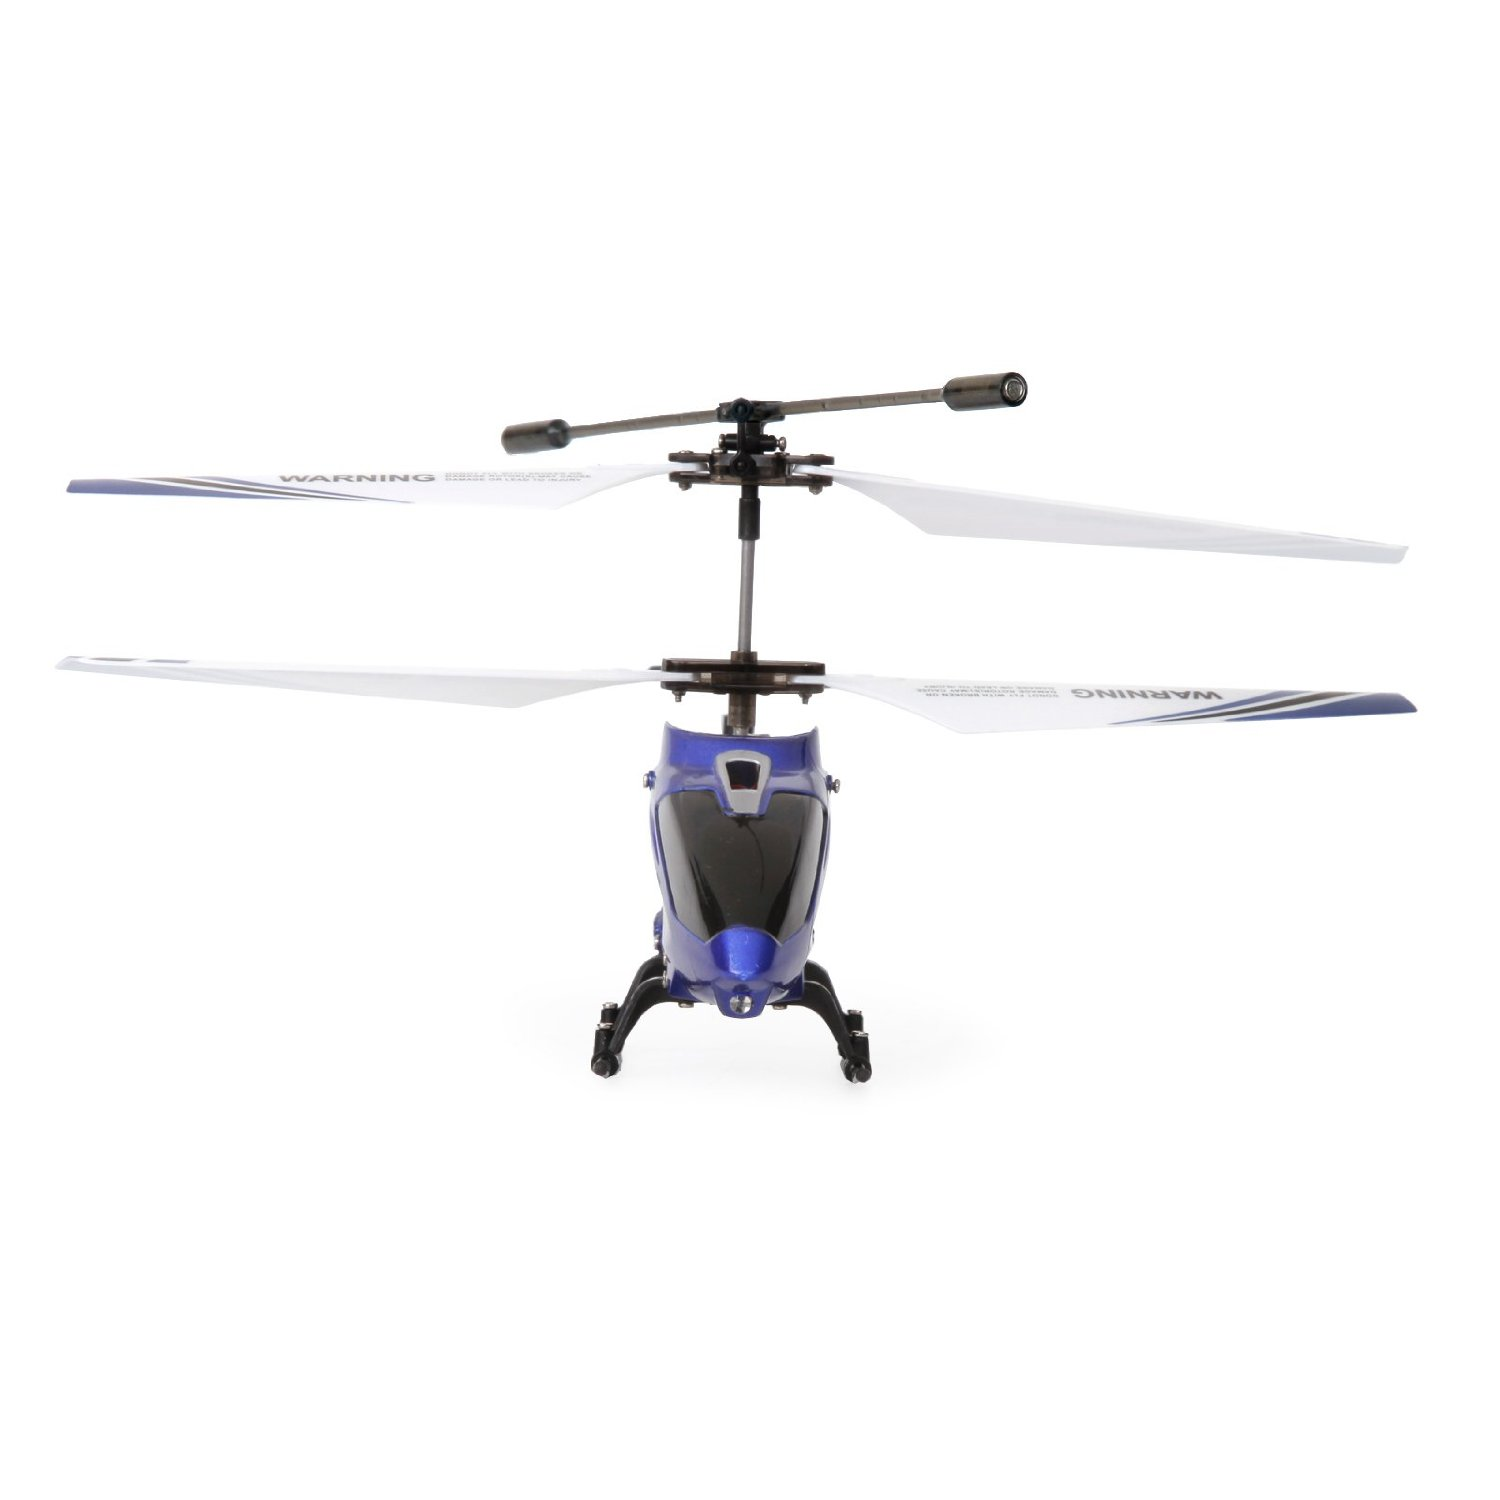 Channel rc helicopter with gyro1